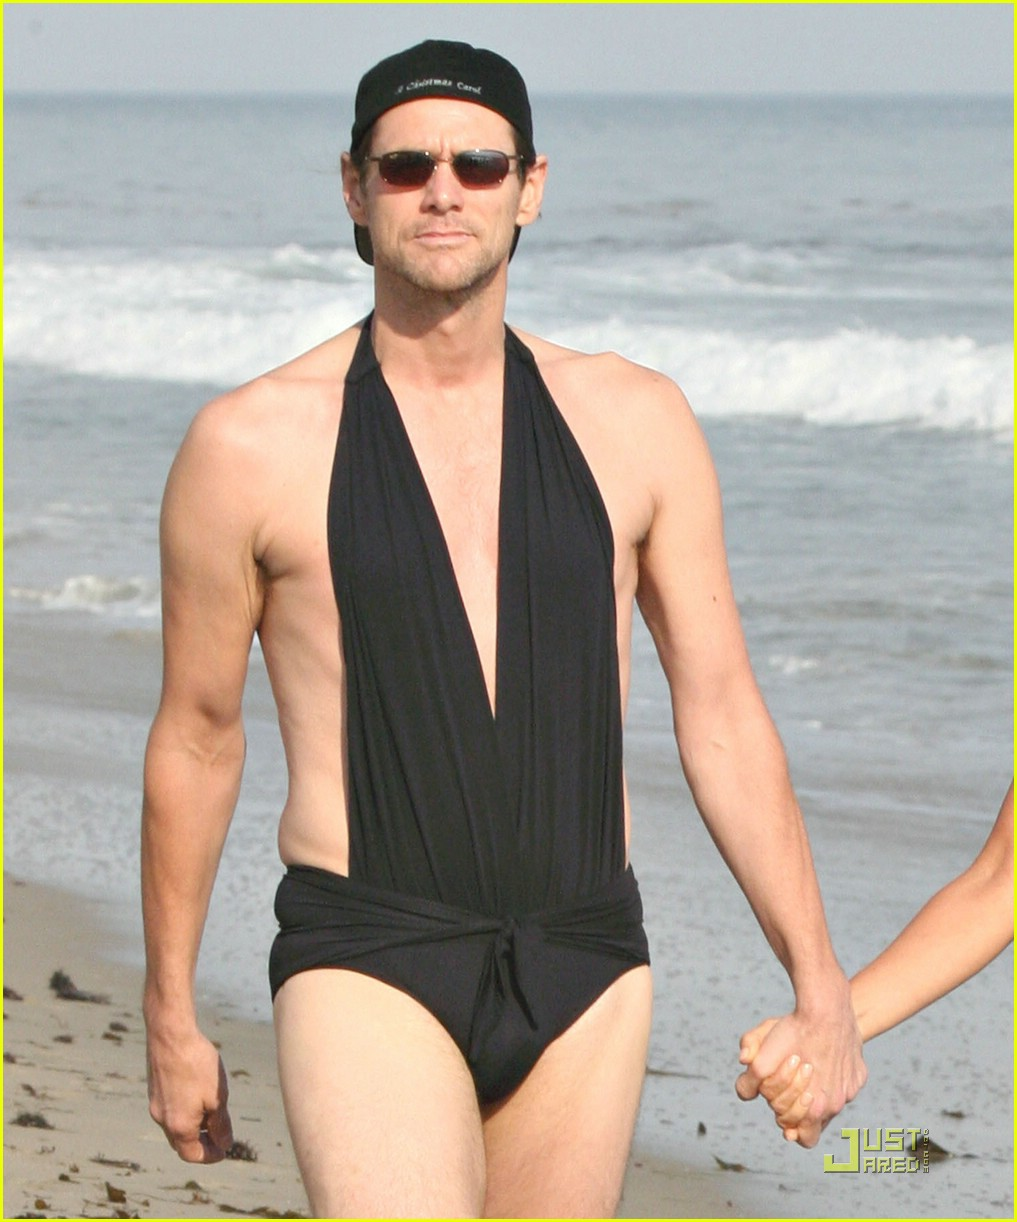 jim carrey jenny mccarthy same swimsuit 01